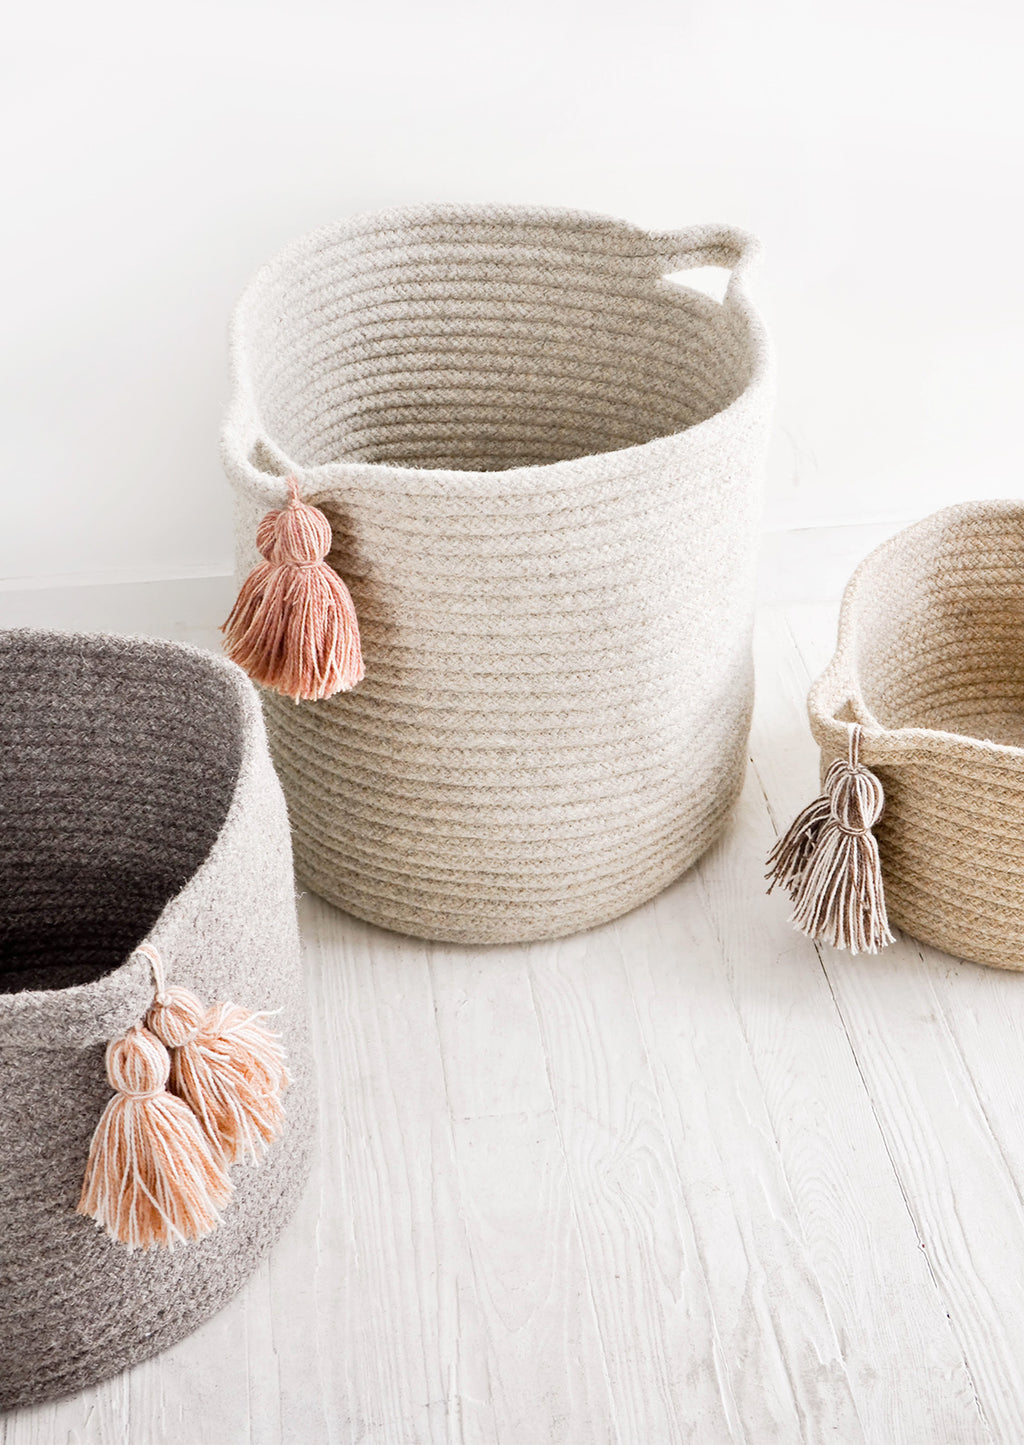 2: Round storage bins in natural wool. Handles at sides with oversized tassel detail.